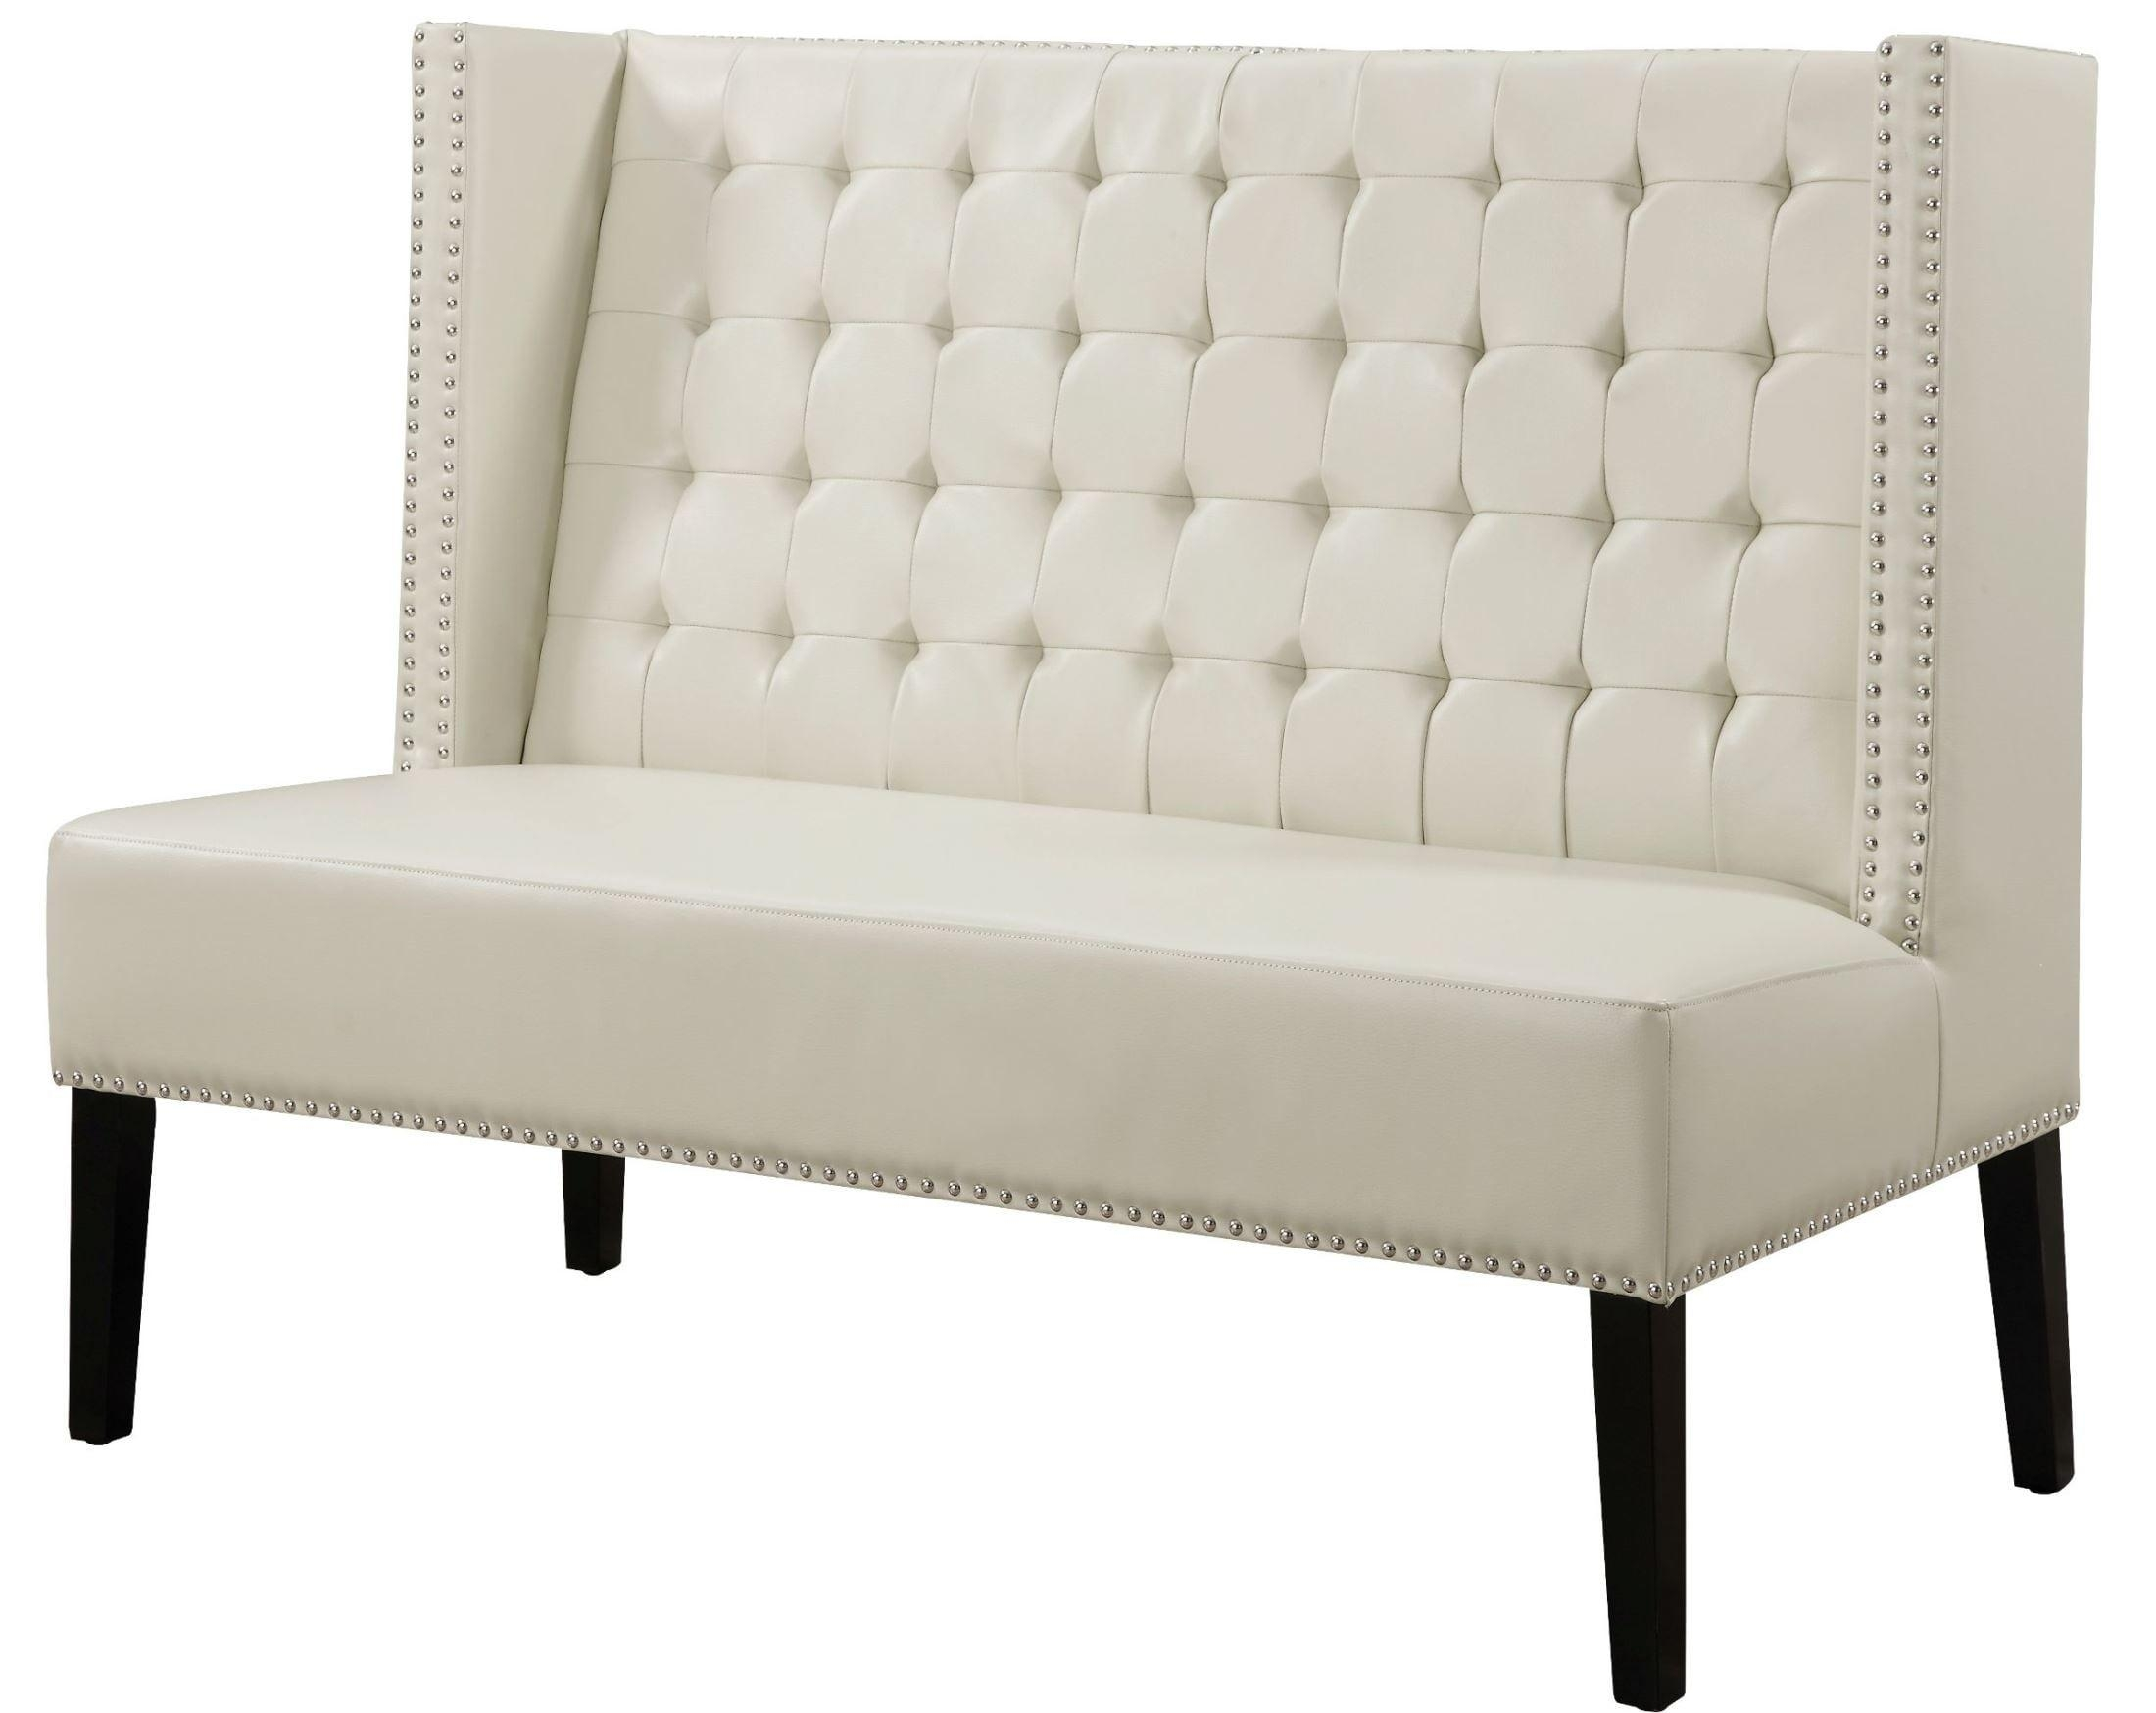 Halifax Cream Leather Banquette Bench From Tov (63115 Cream With Regard To Leather Bench Sofas (View 20 of 22)